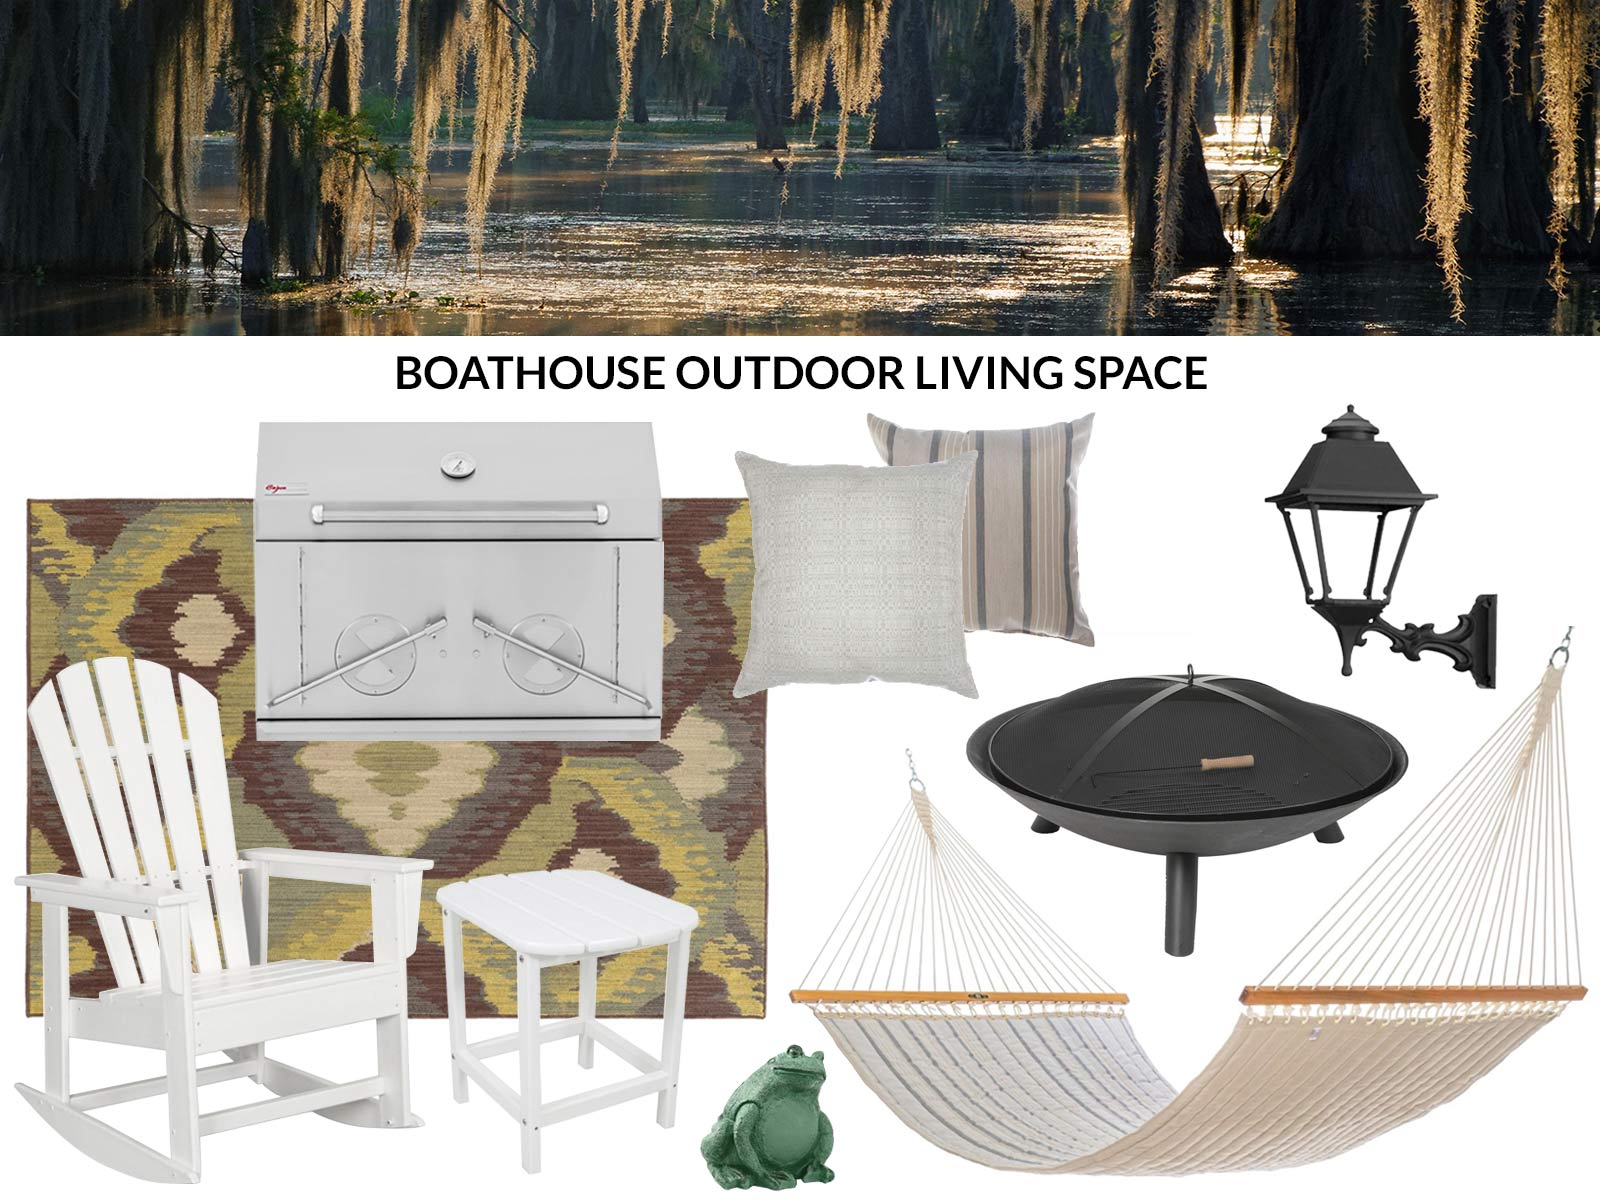 Products recommended to create a bayou boathouse outdoor living space